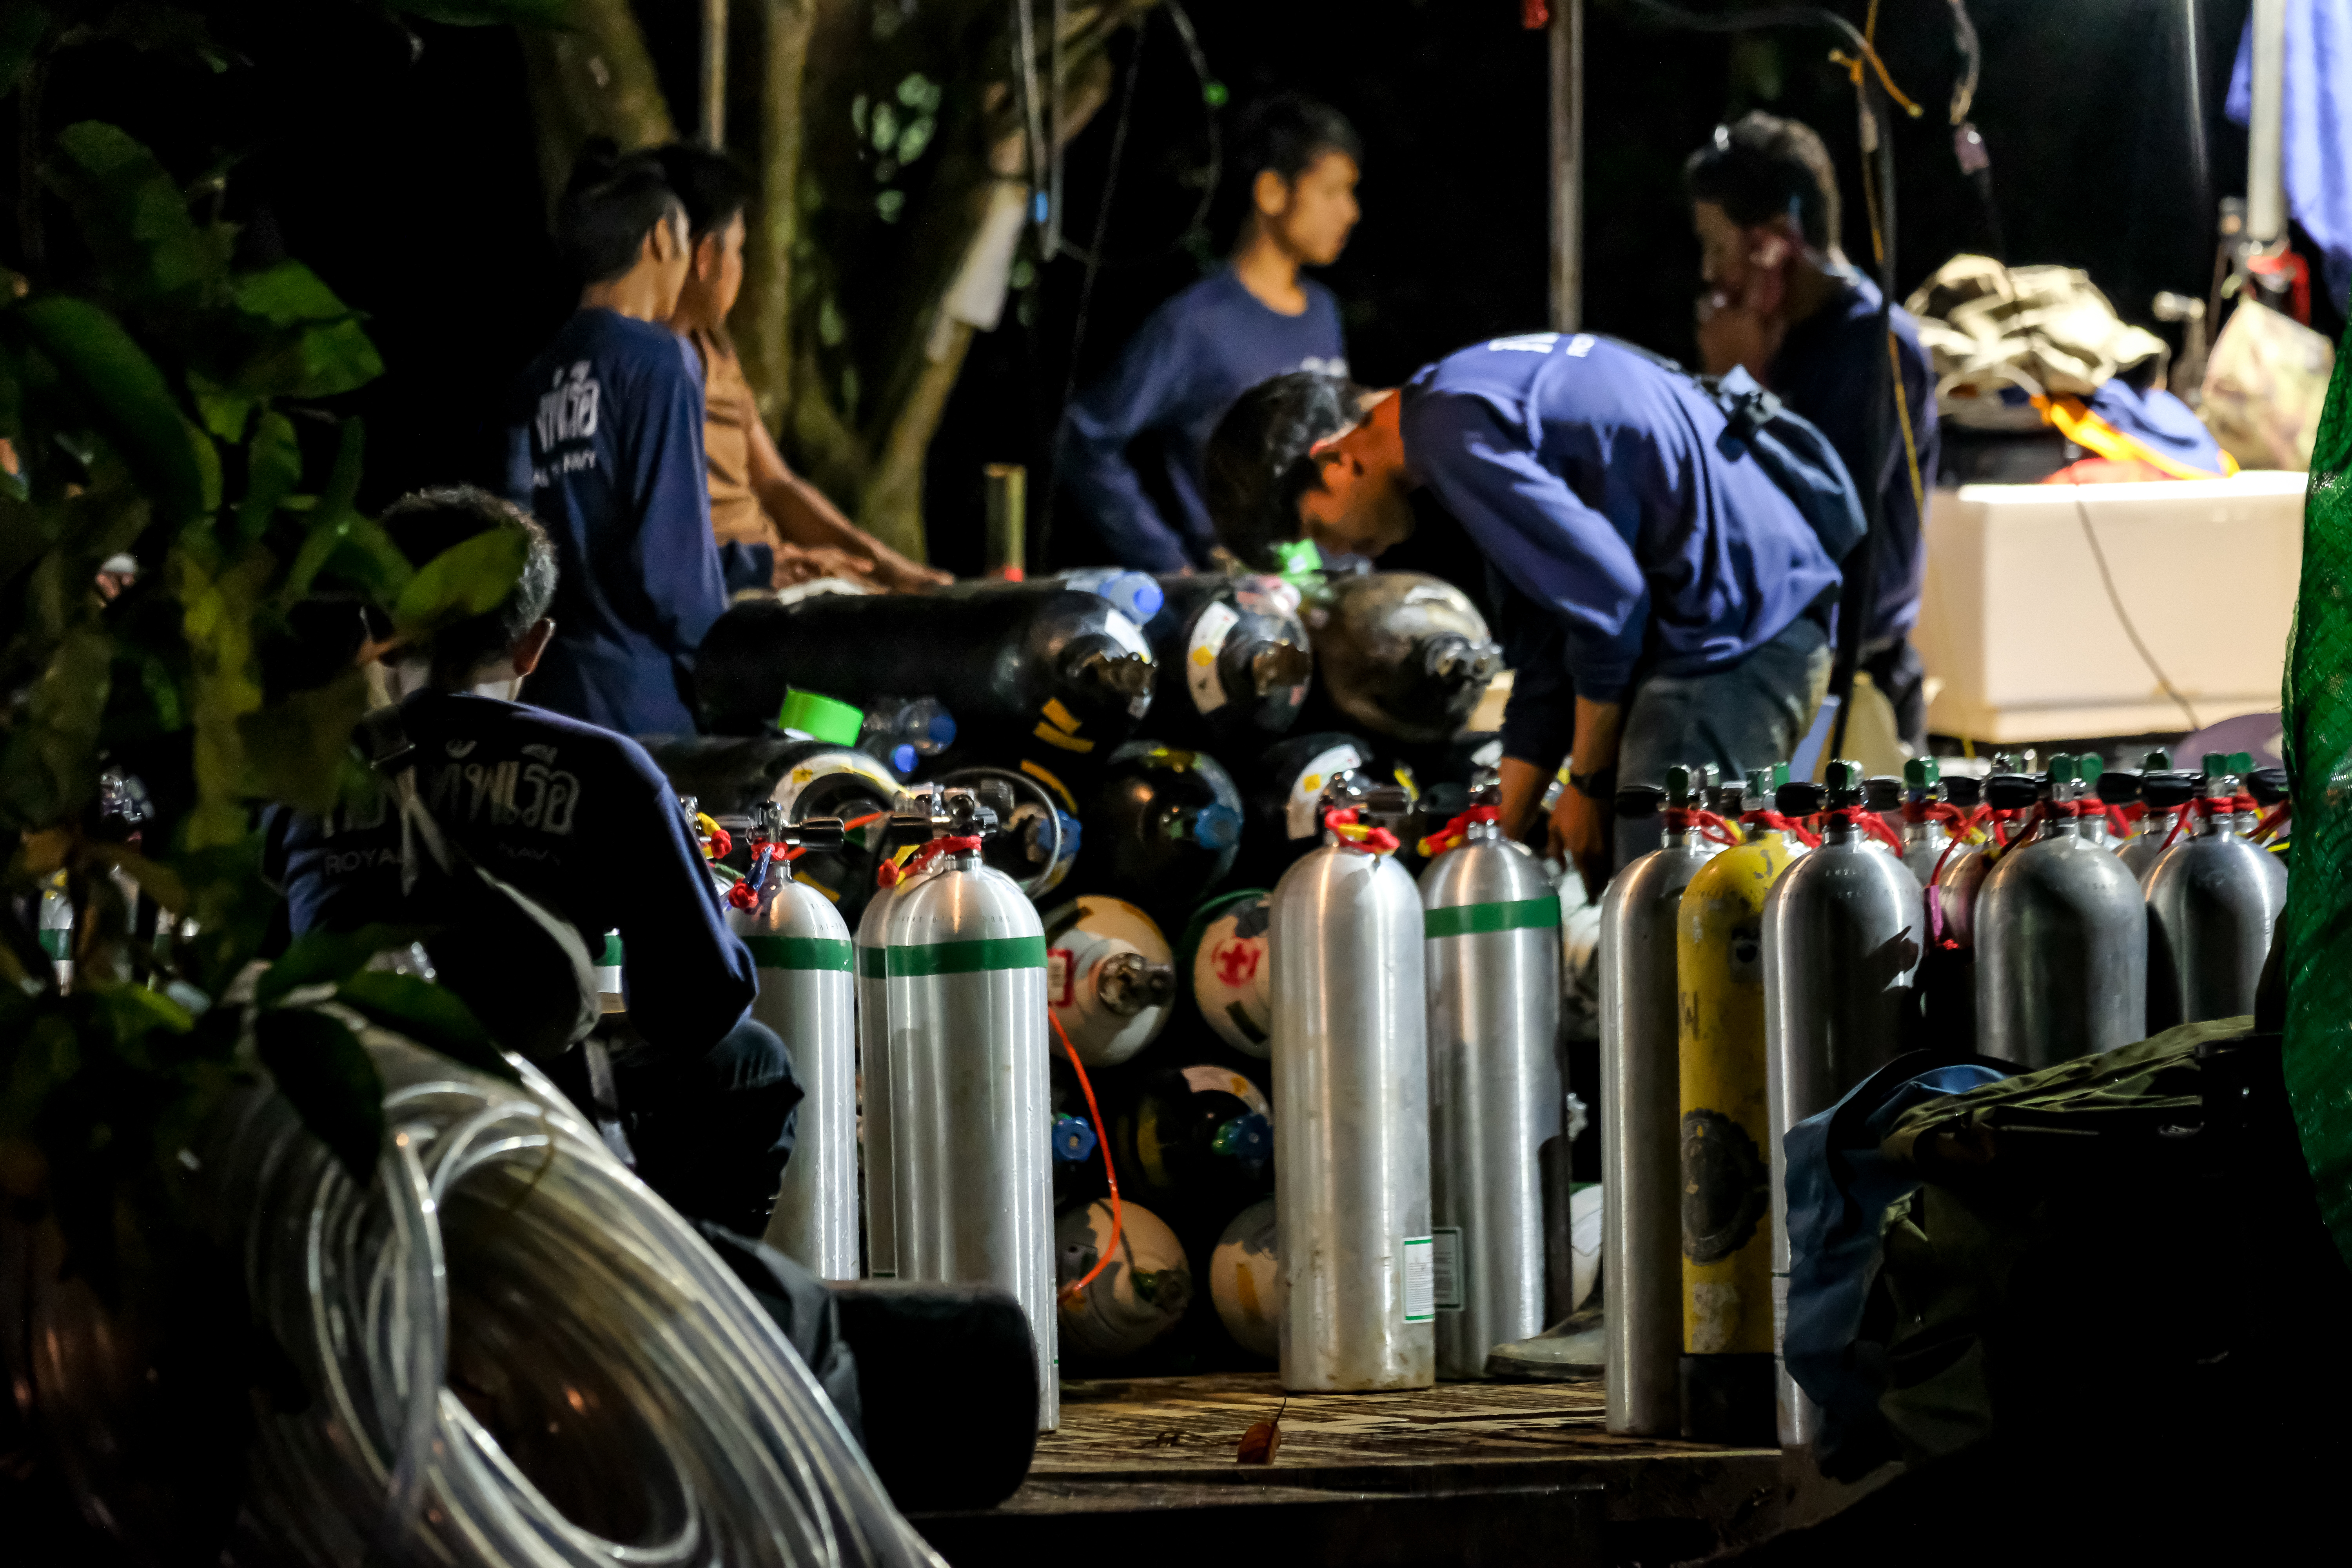 Diving cylinders are prepared at a makeshift camp at the entrance of Tham Luang Nang Non caves for the divers to continue the rescue operation for the 12 trapped children and their coach on July 06, 2018 in Chiang Rai, Thailand. (Getty Images)